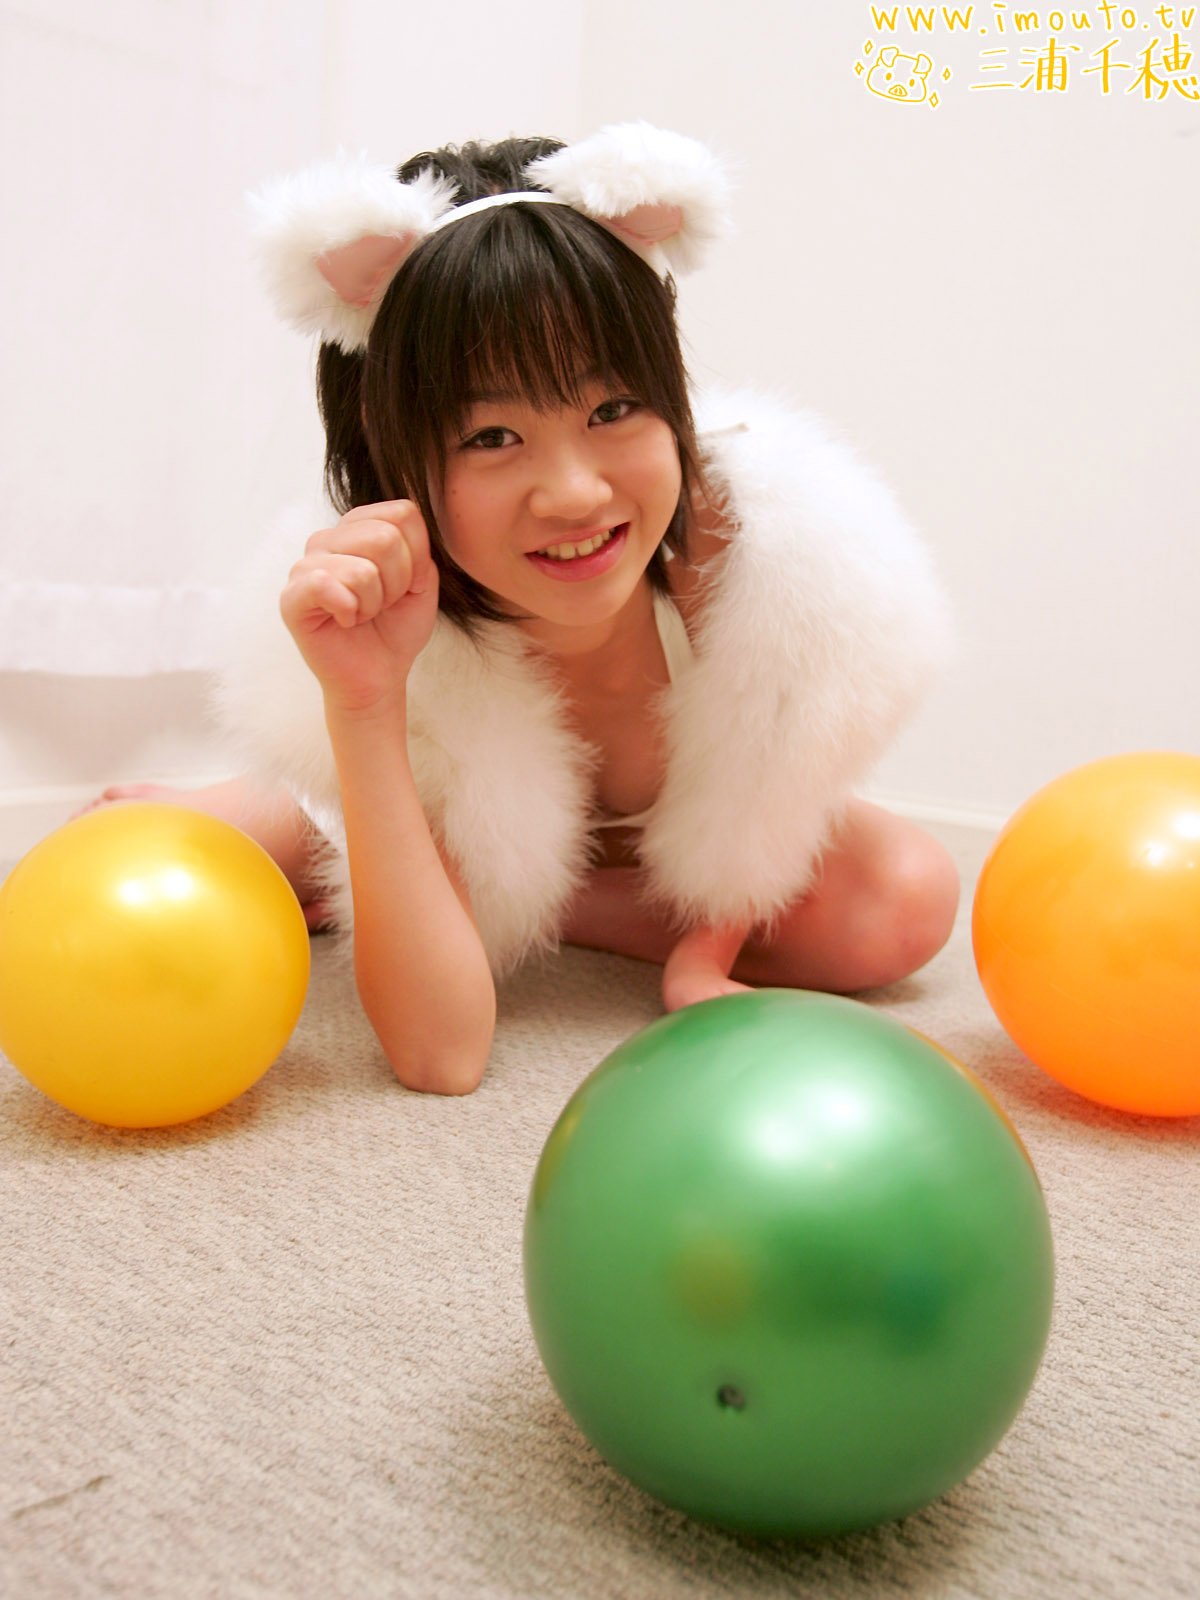 kootation.com/imouto-tv-photo-gallery-picture-japanese-idol-girls-u15